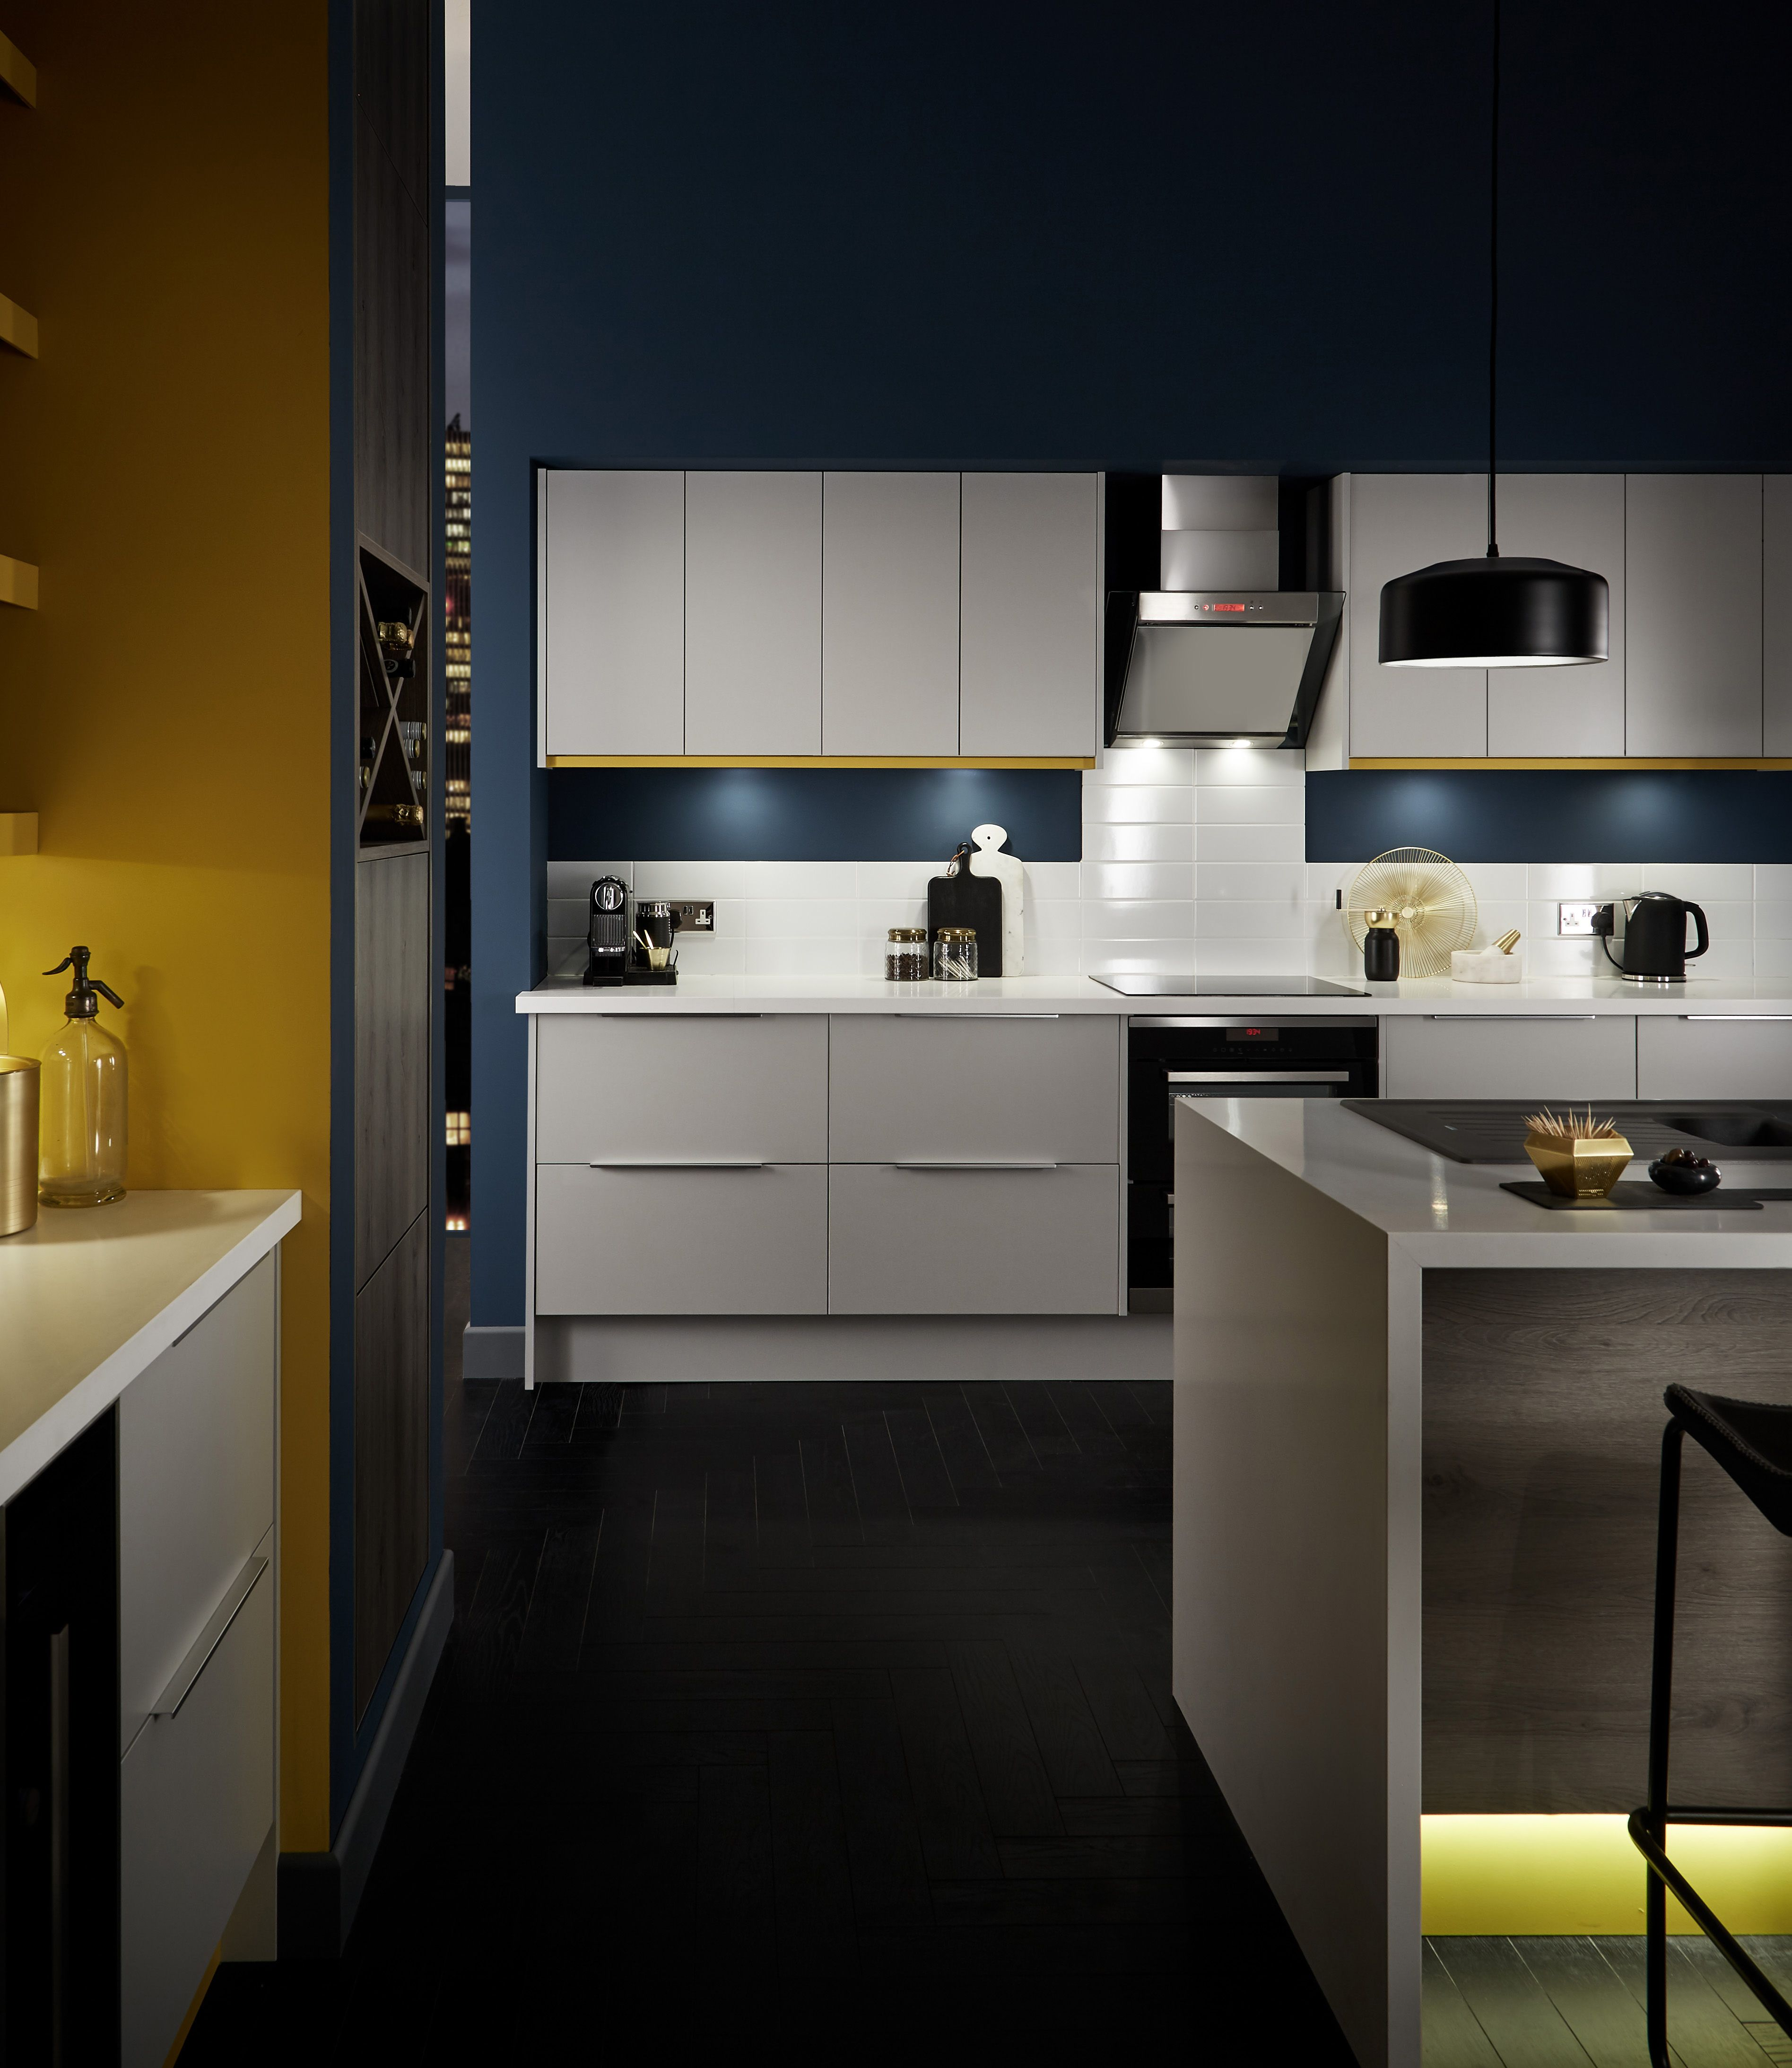 Grey slab kitchen cabinets - A Matt Light Grey Slab Door Is Highly Versatile And Can Be Complemented With Black And